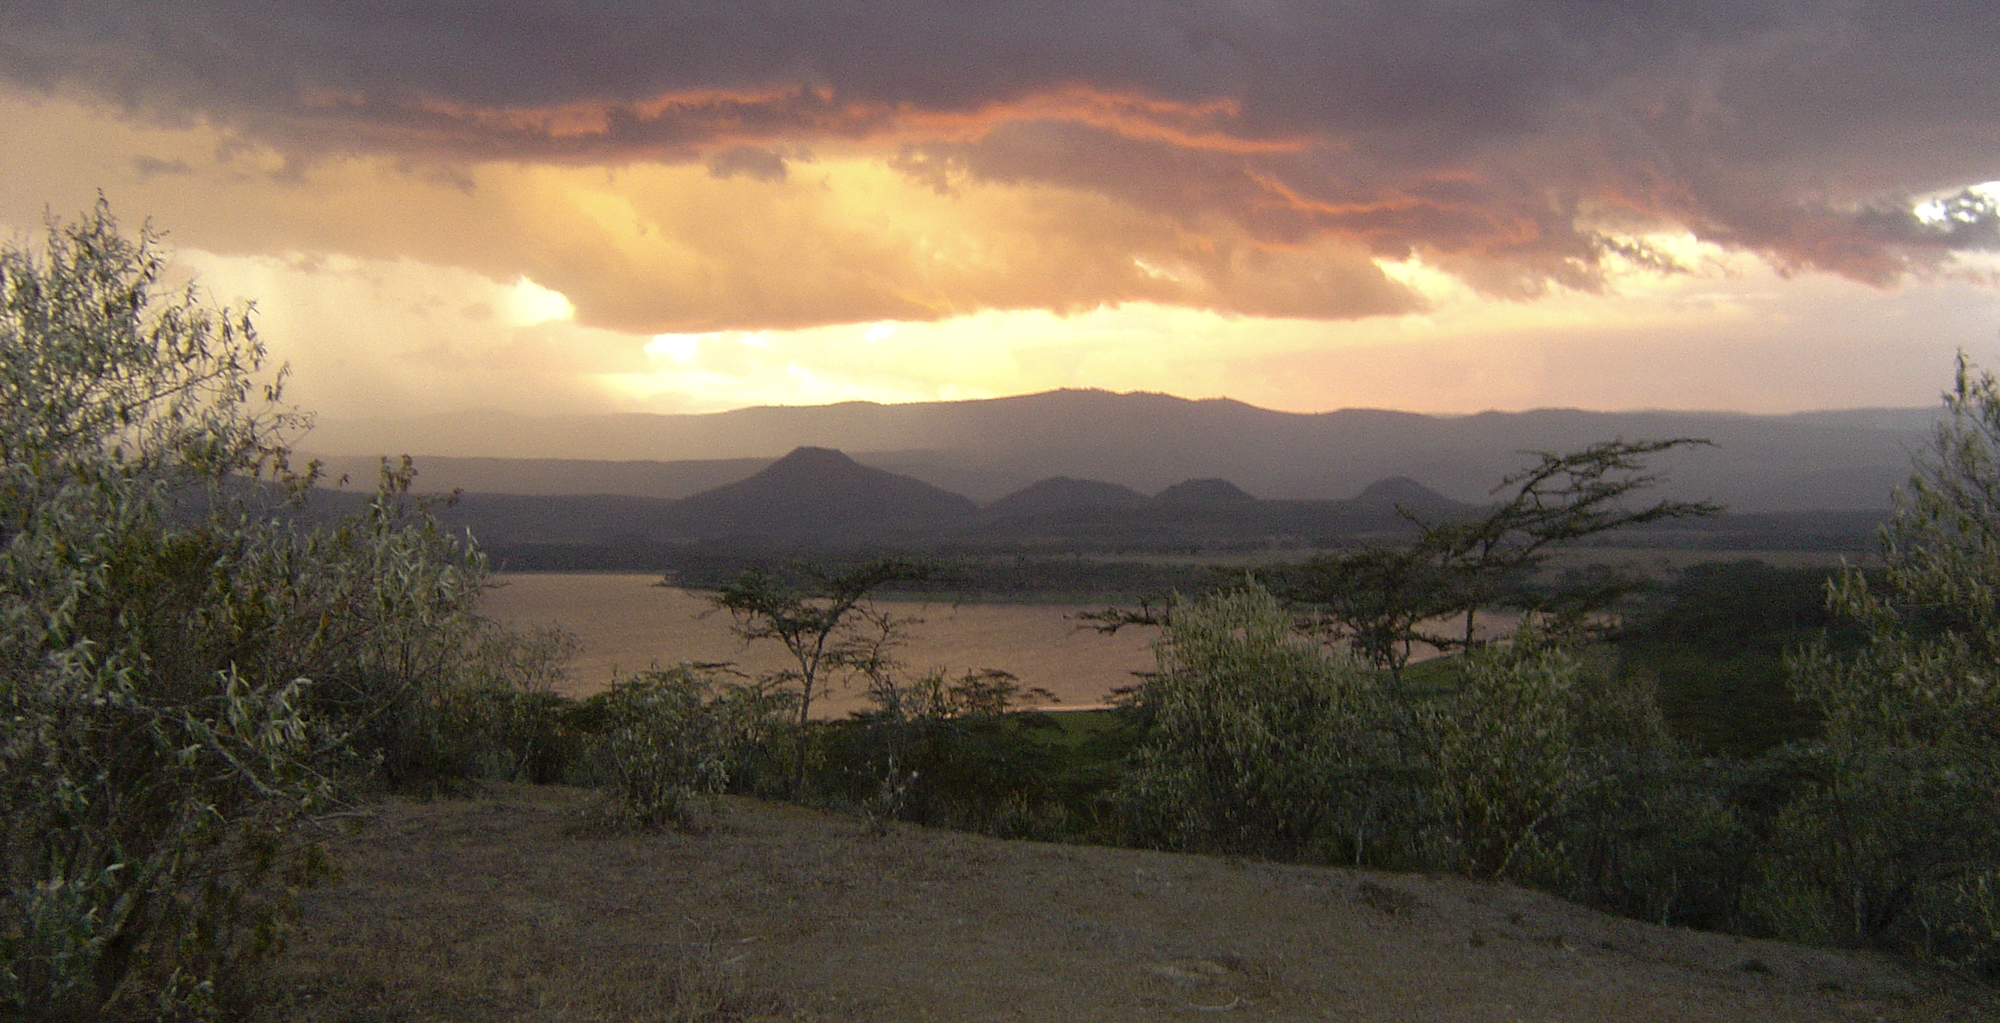 Kenya-Great-Rift-Valley-Landscape-Sunset